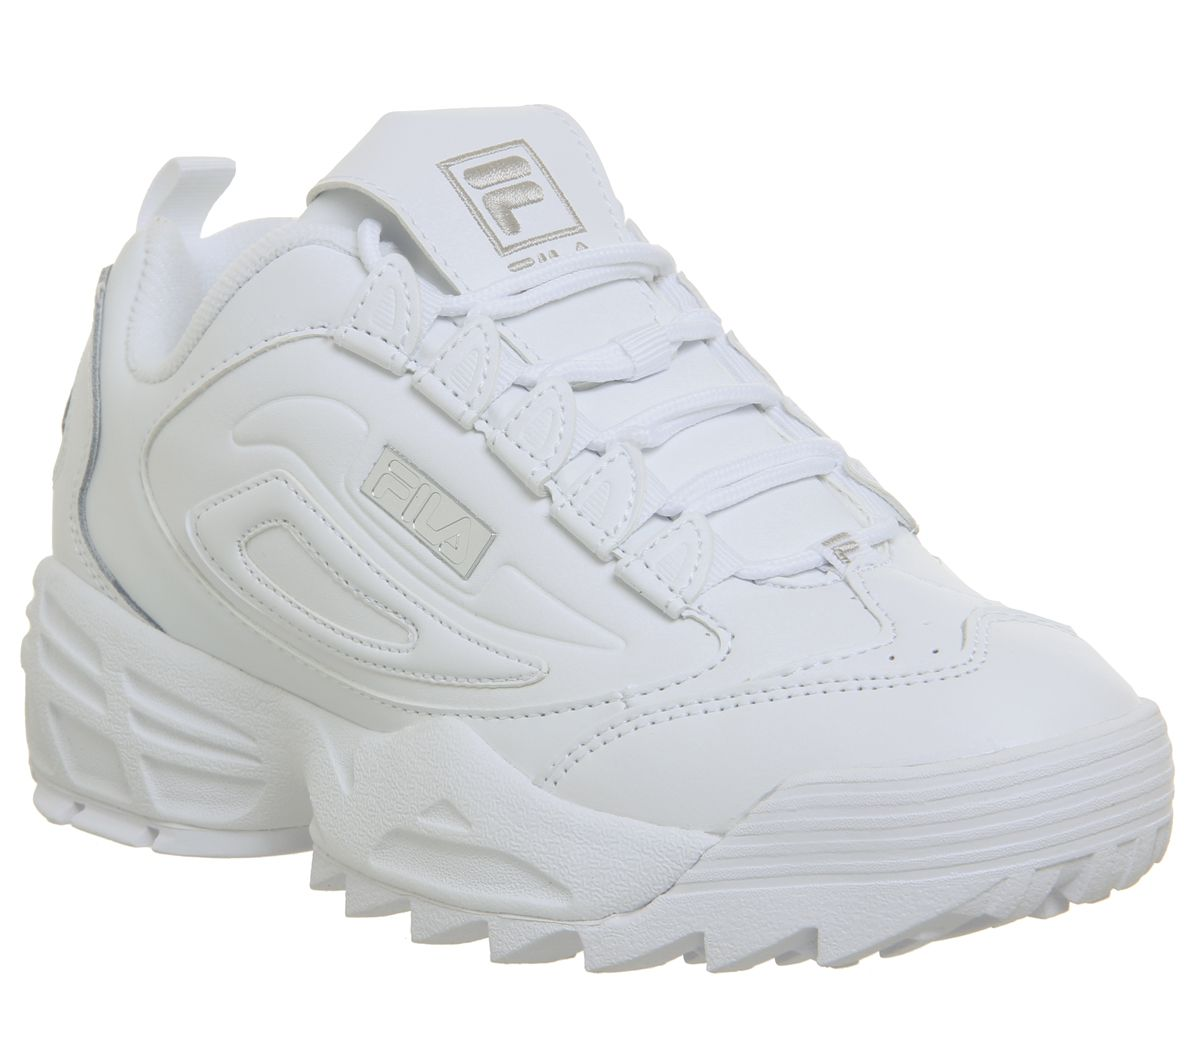 9cef9f56d351 Fila Disruptor 3 Trainers White - Hers trainers